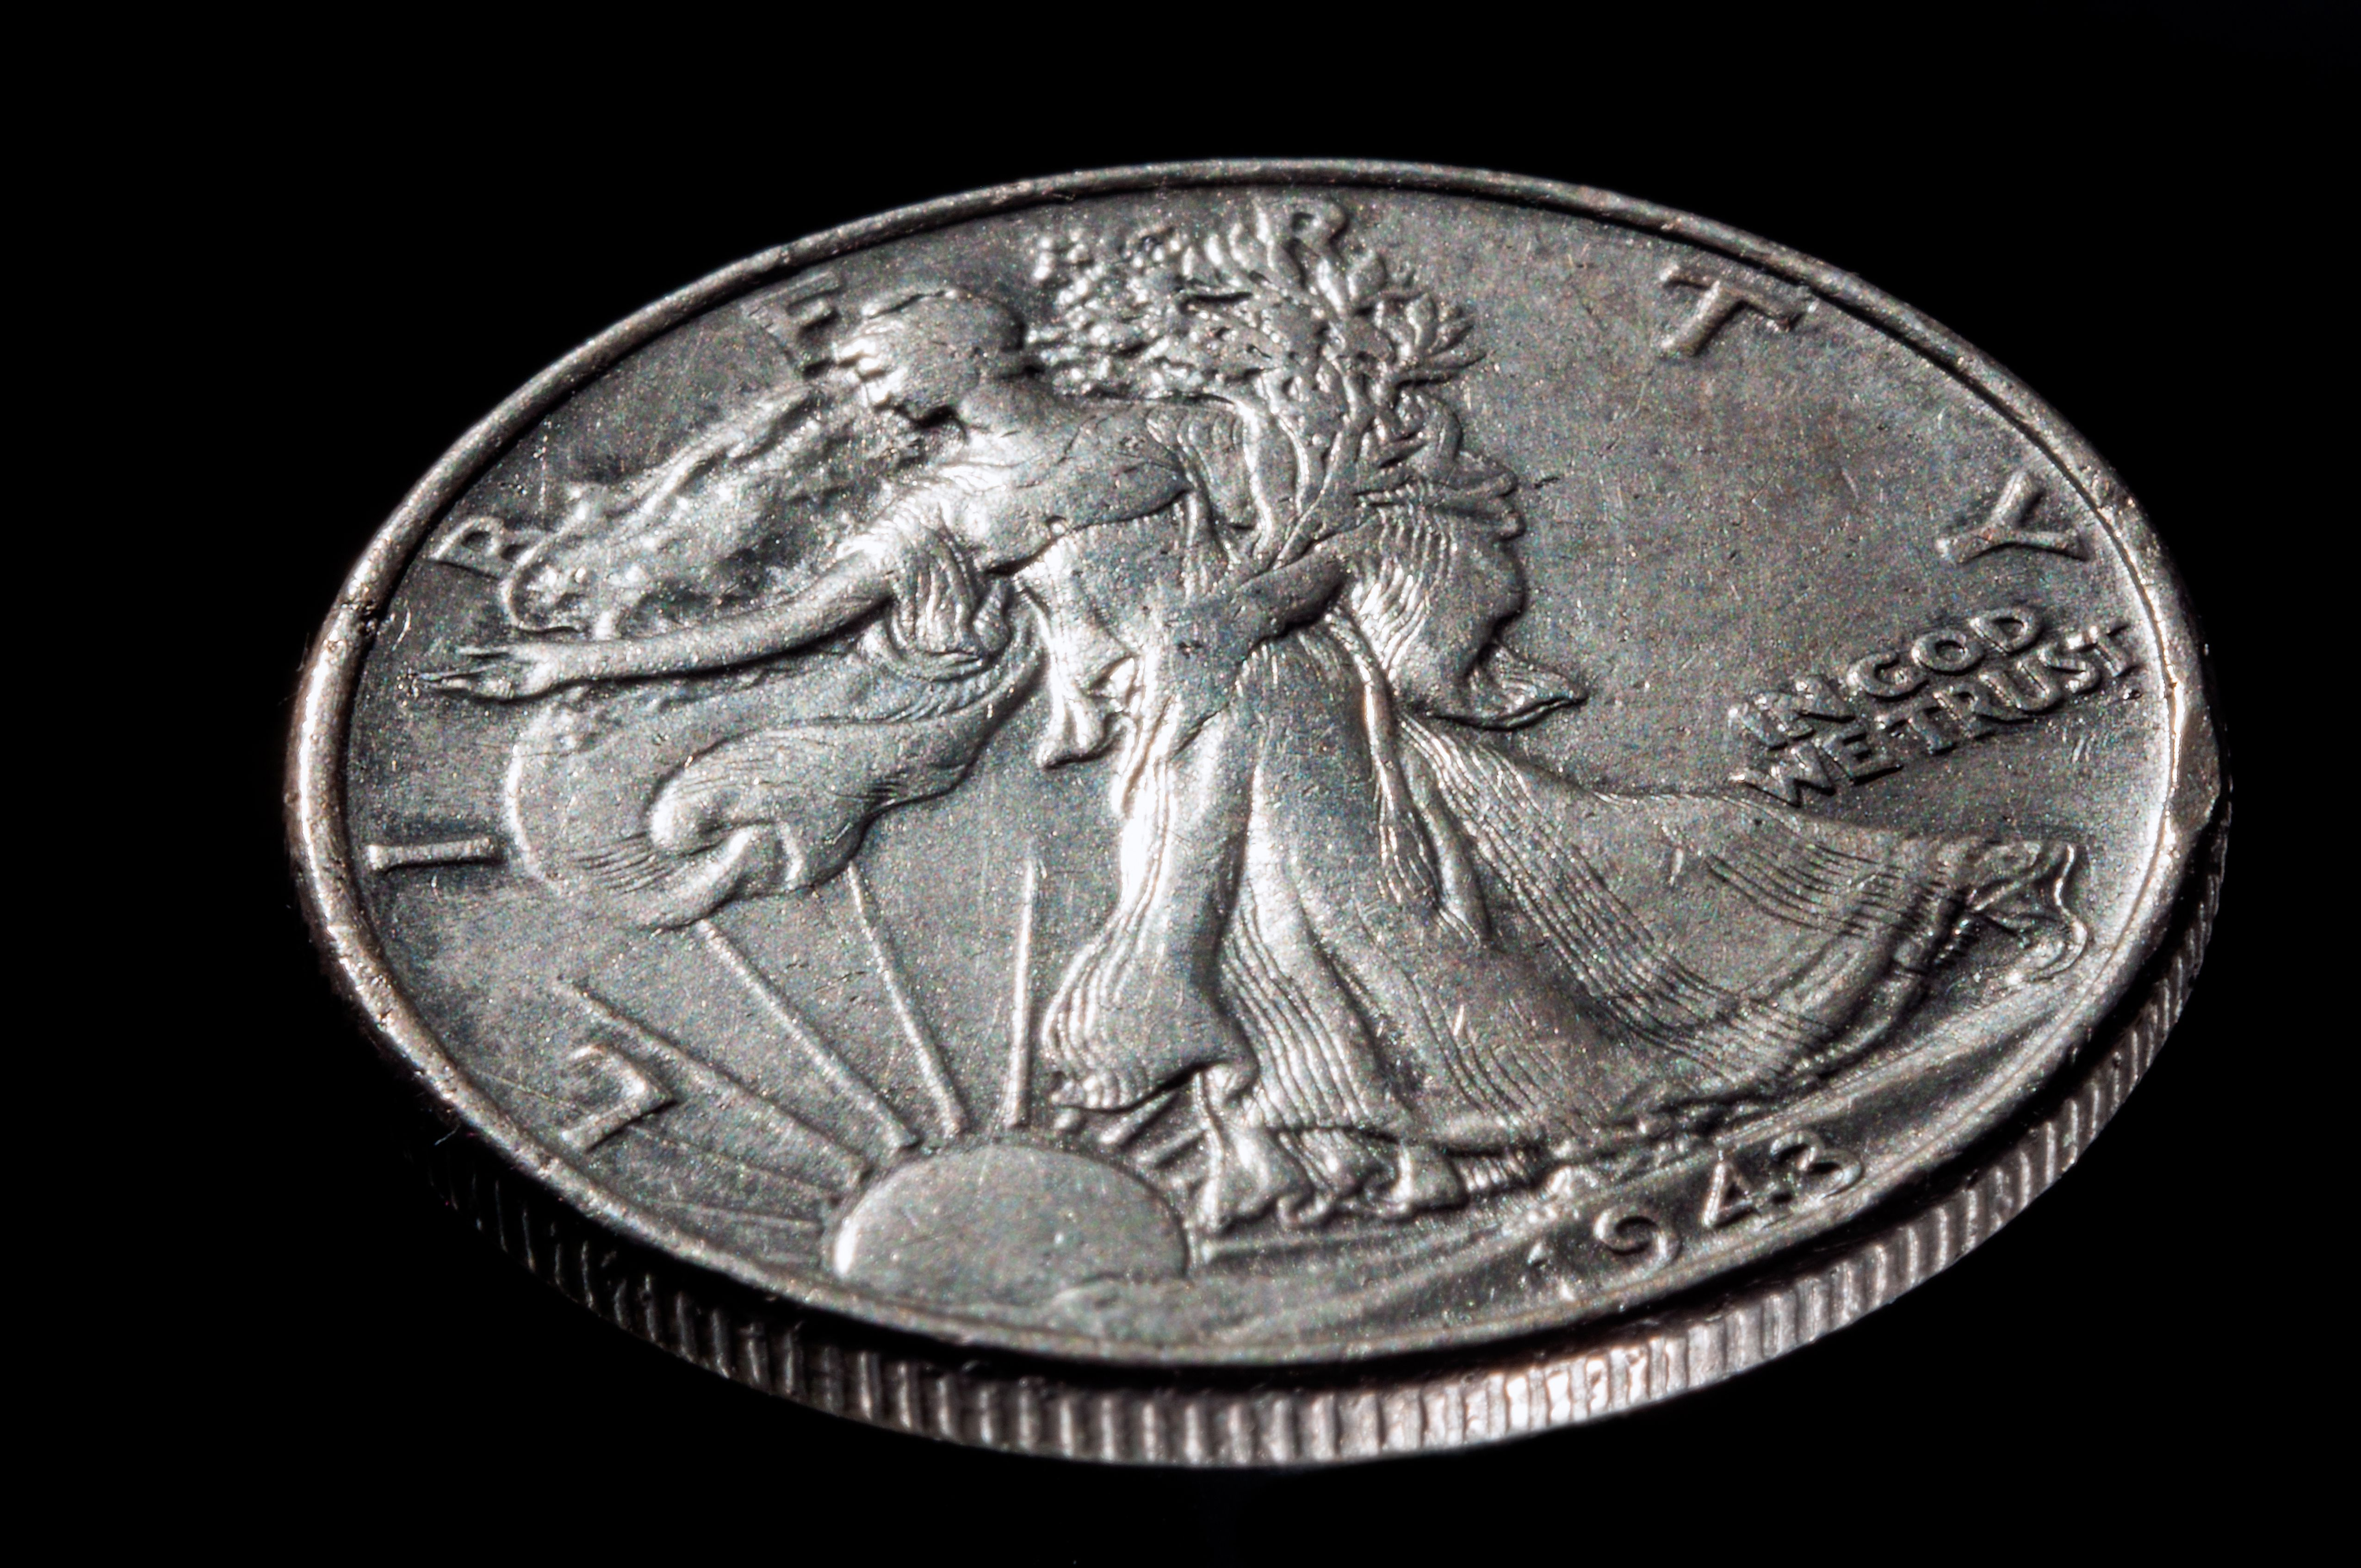 The Gem Brilliant Uncirculated Is a Gem of a Coin